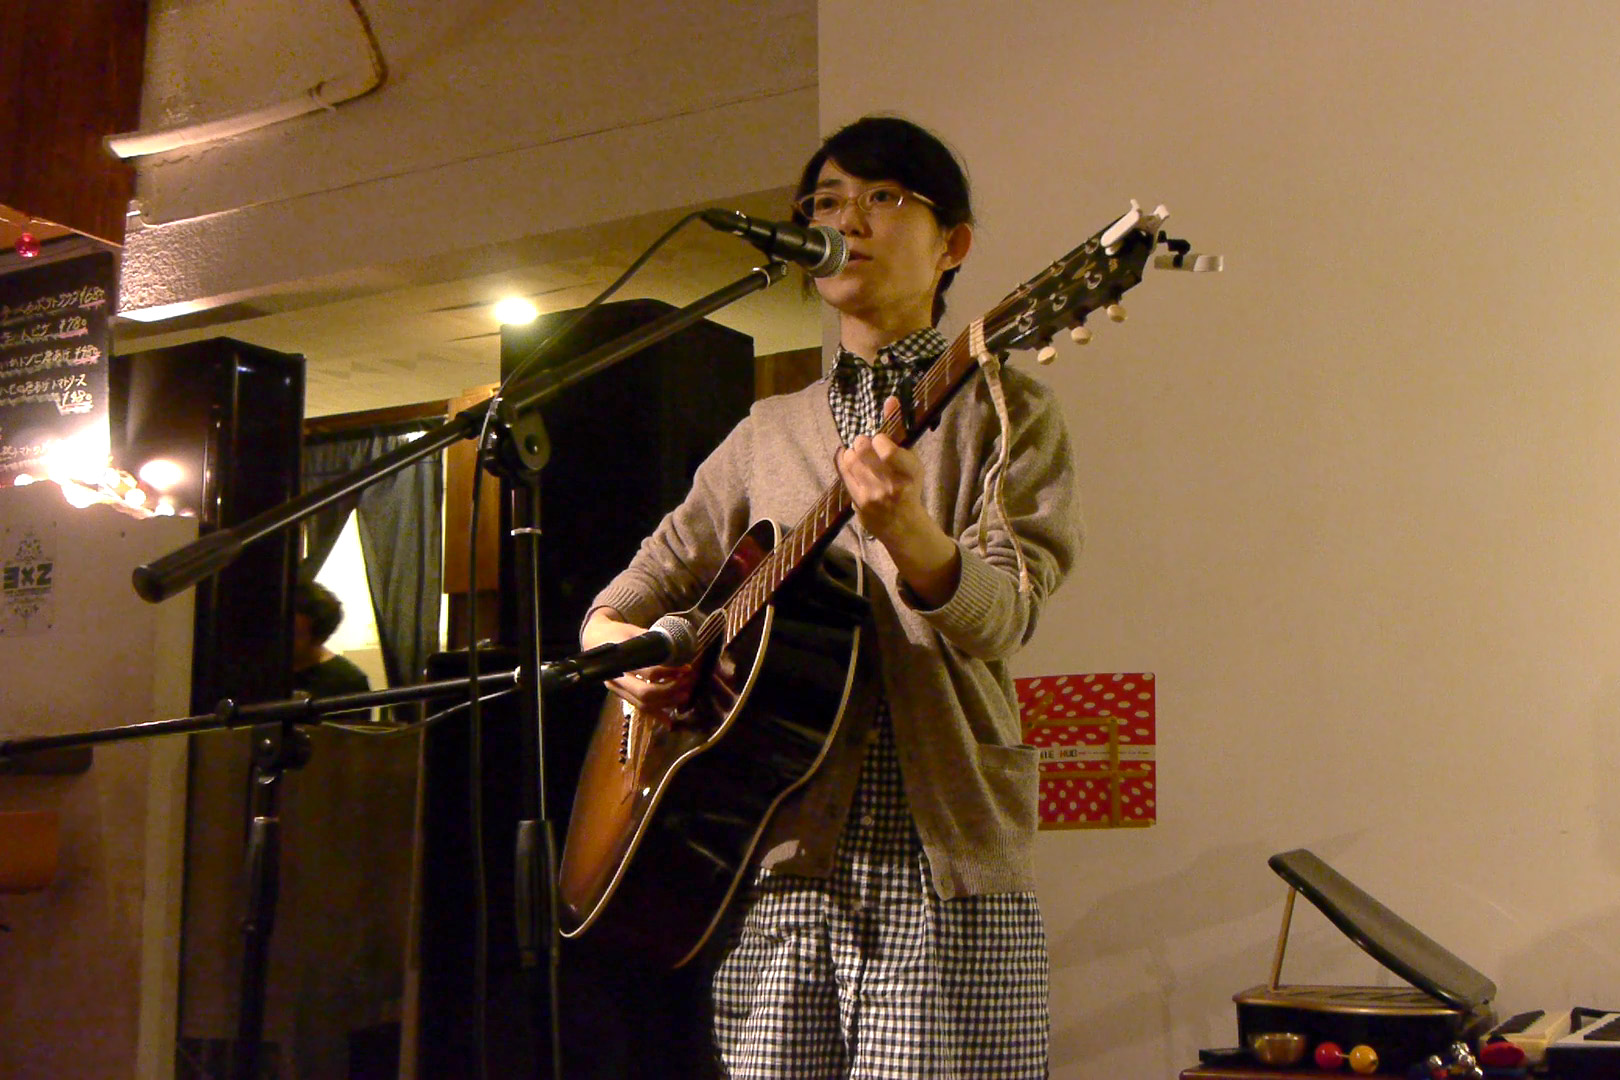 萬人音樂堂Presents レコ発ライブツアー in 沖縄 2012 OKINAWA HARMLESS @ 沖縄 Cafe & Dining Bar THREE_c0000587_19443931.jpg